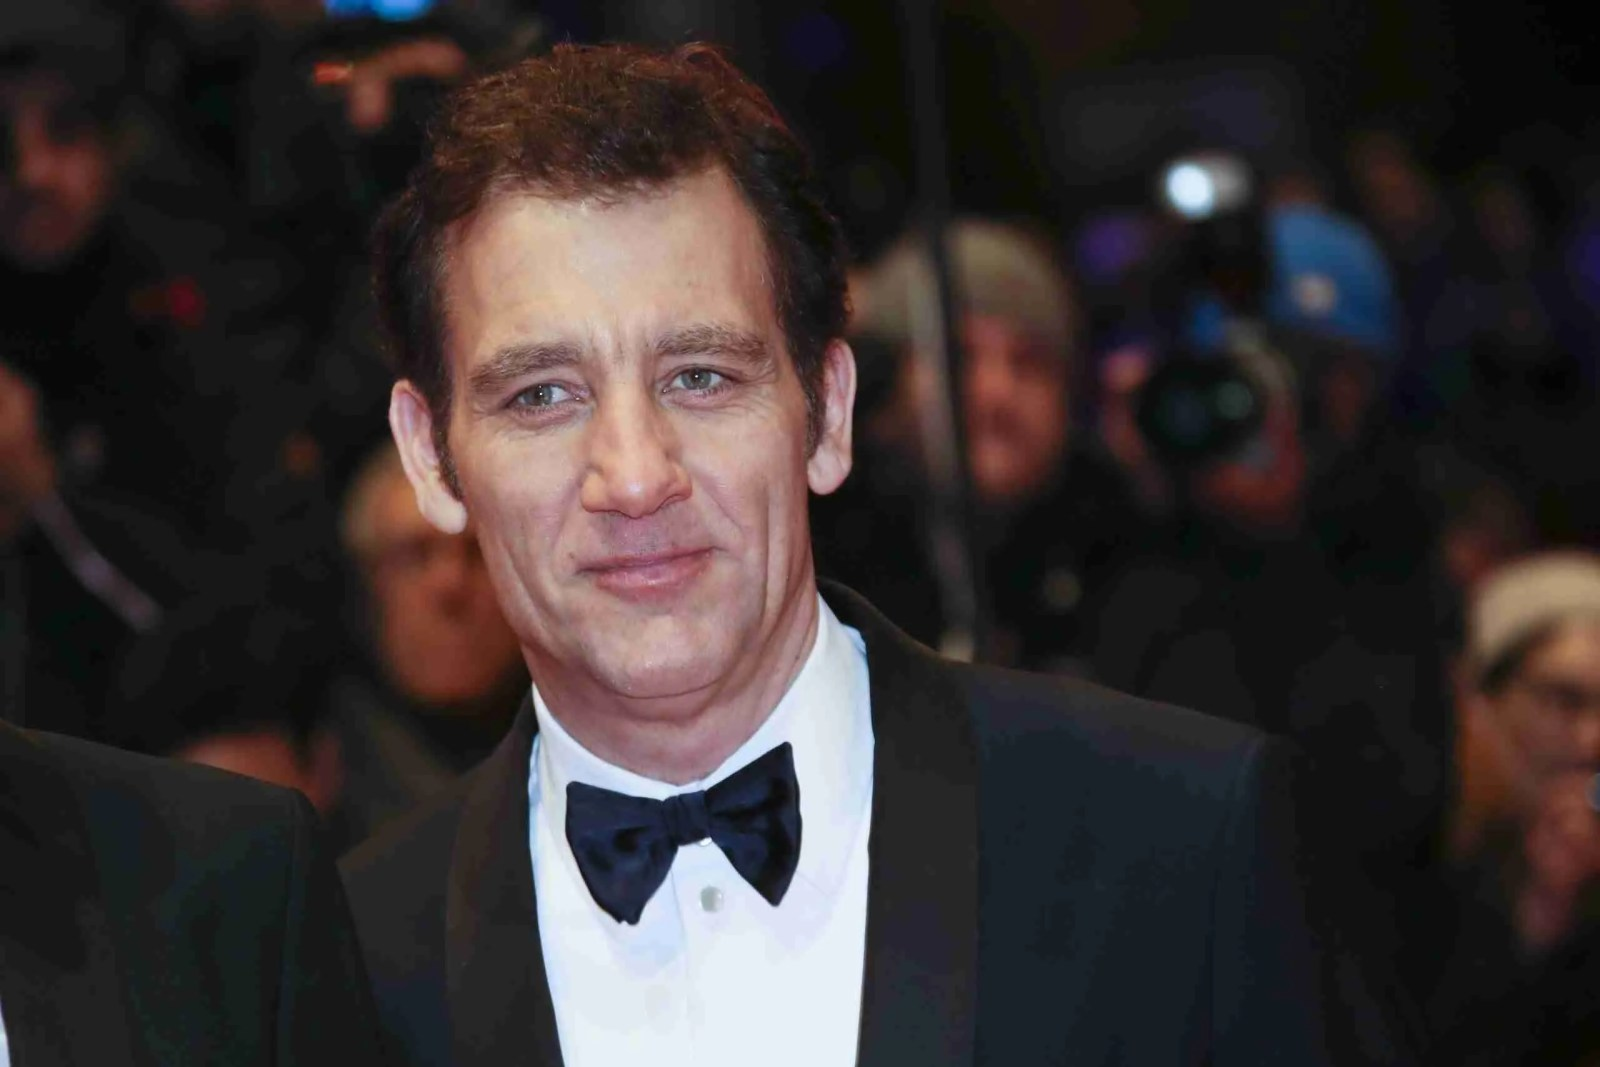 Clive Owen To Play Bill Clinton In 'Impeachment: American Crime Story' On FX 7